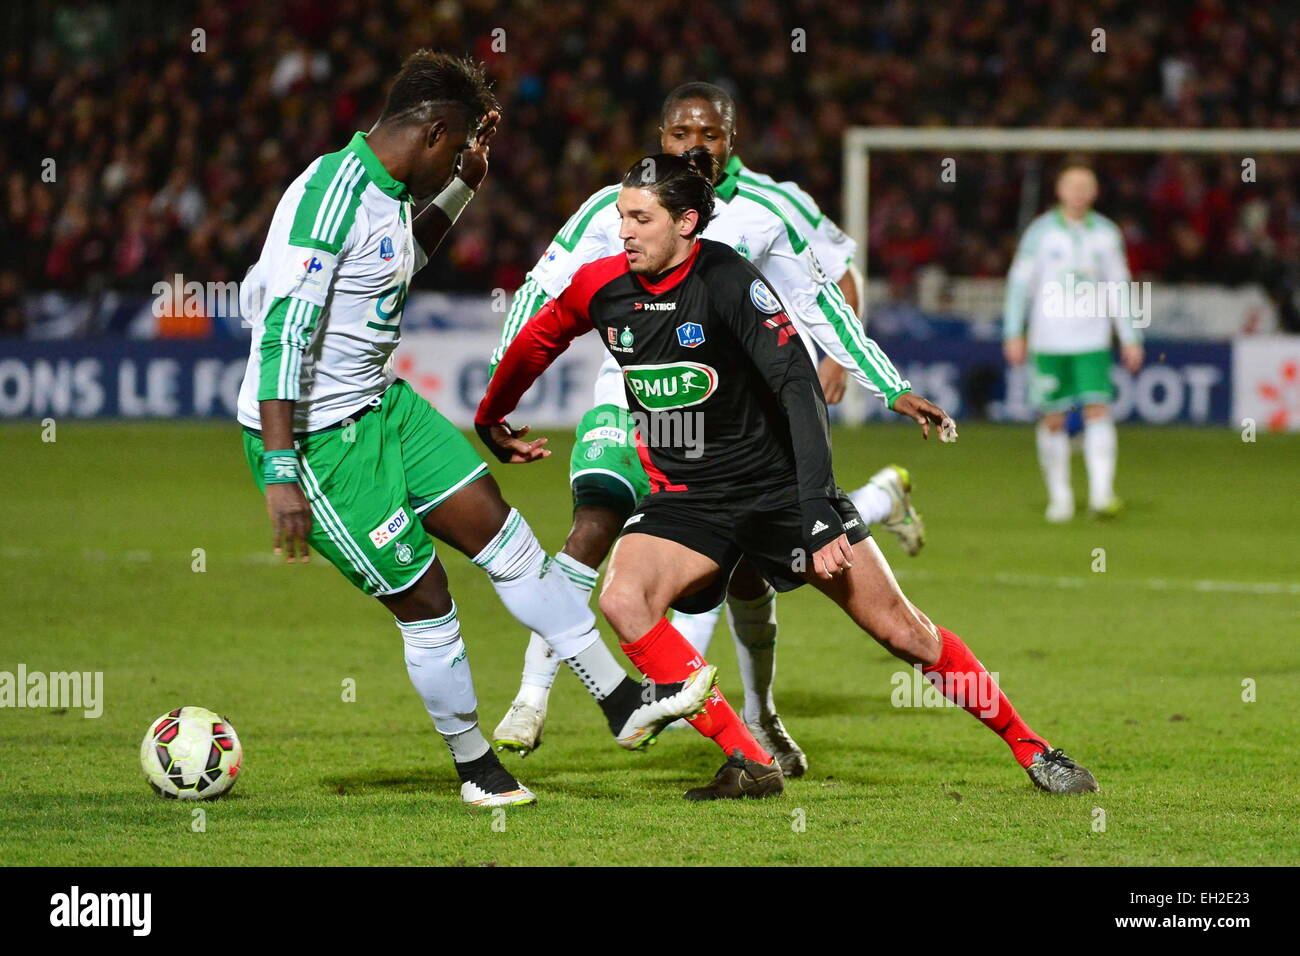 Elohim ROLLAND/Moustapha SALL - 03.03.2015 - Boulogne/Saint Etienne - 1/4Finale Coupe de France.Photo : Dave Winter/Icon - Stock Image